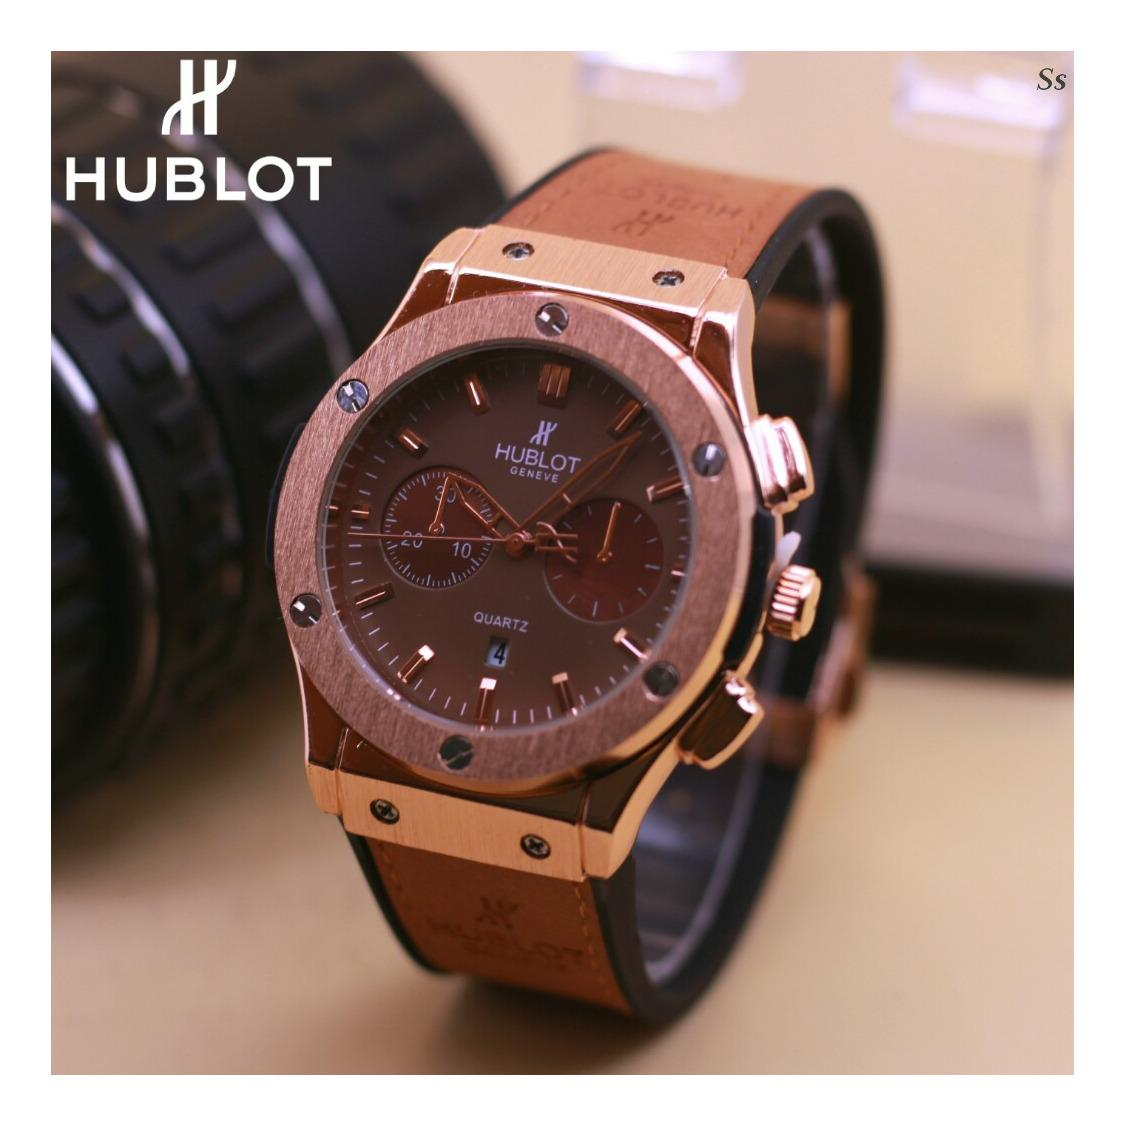 Nautica Casual Jam Tangan Pria Strap Leather Orange Plu2902 Update Nai13537g Silver Forma Dan Fashion Hublot Date On Rubber Body Stainless